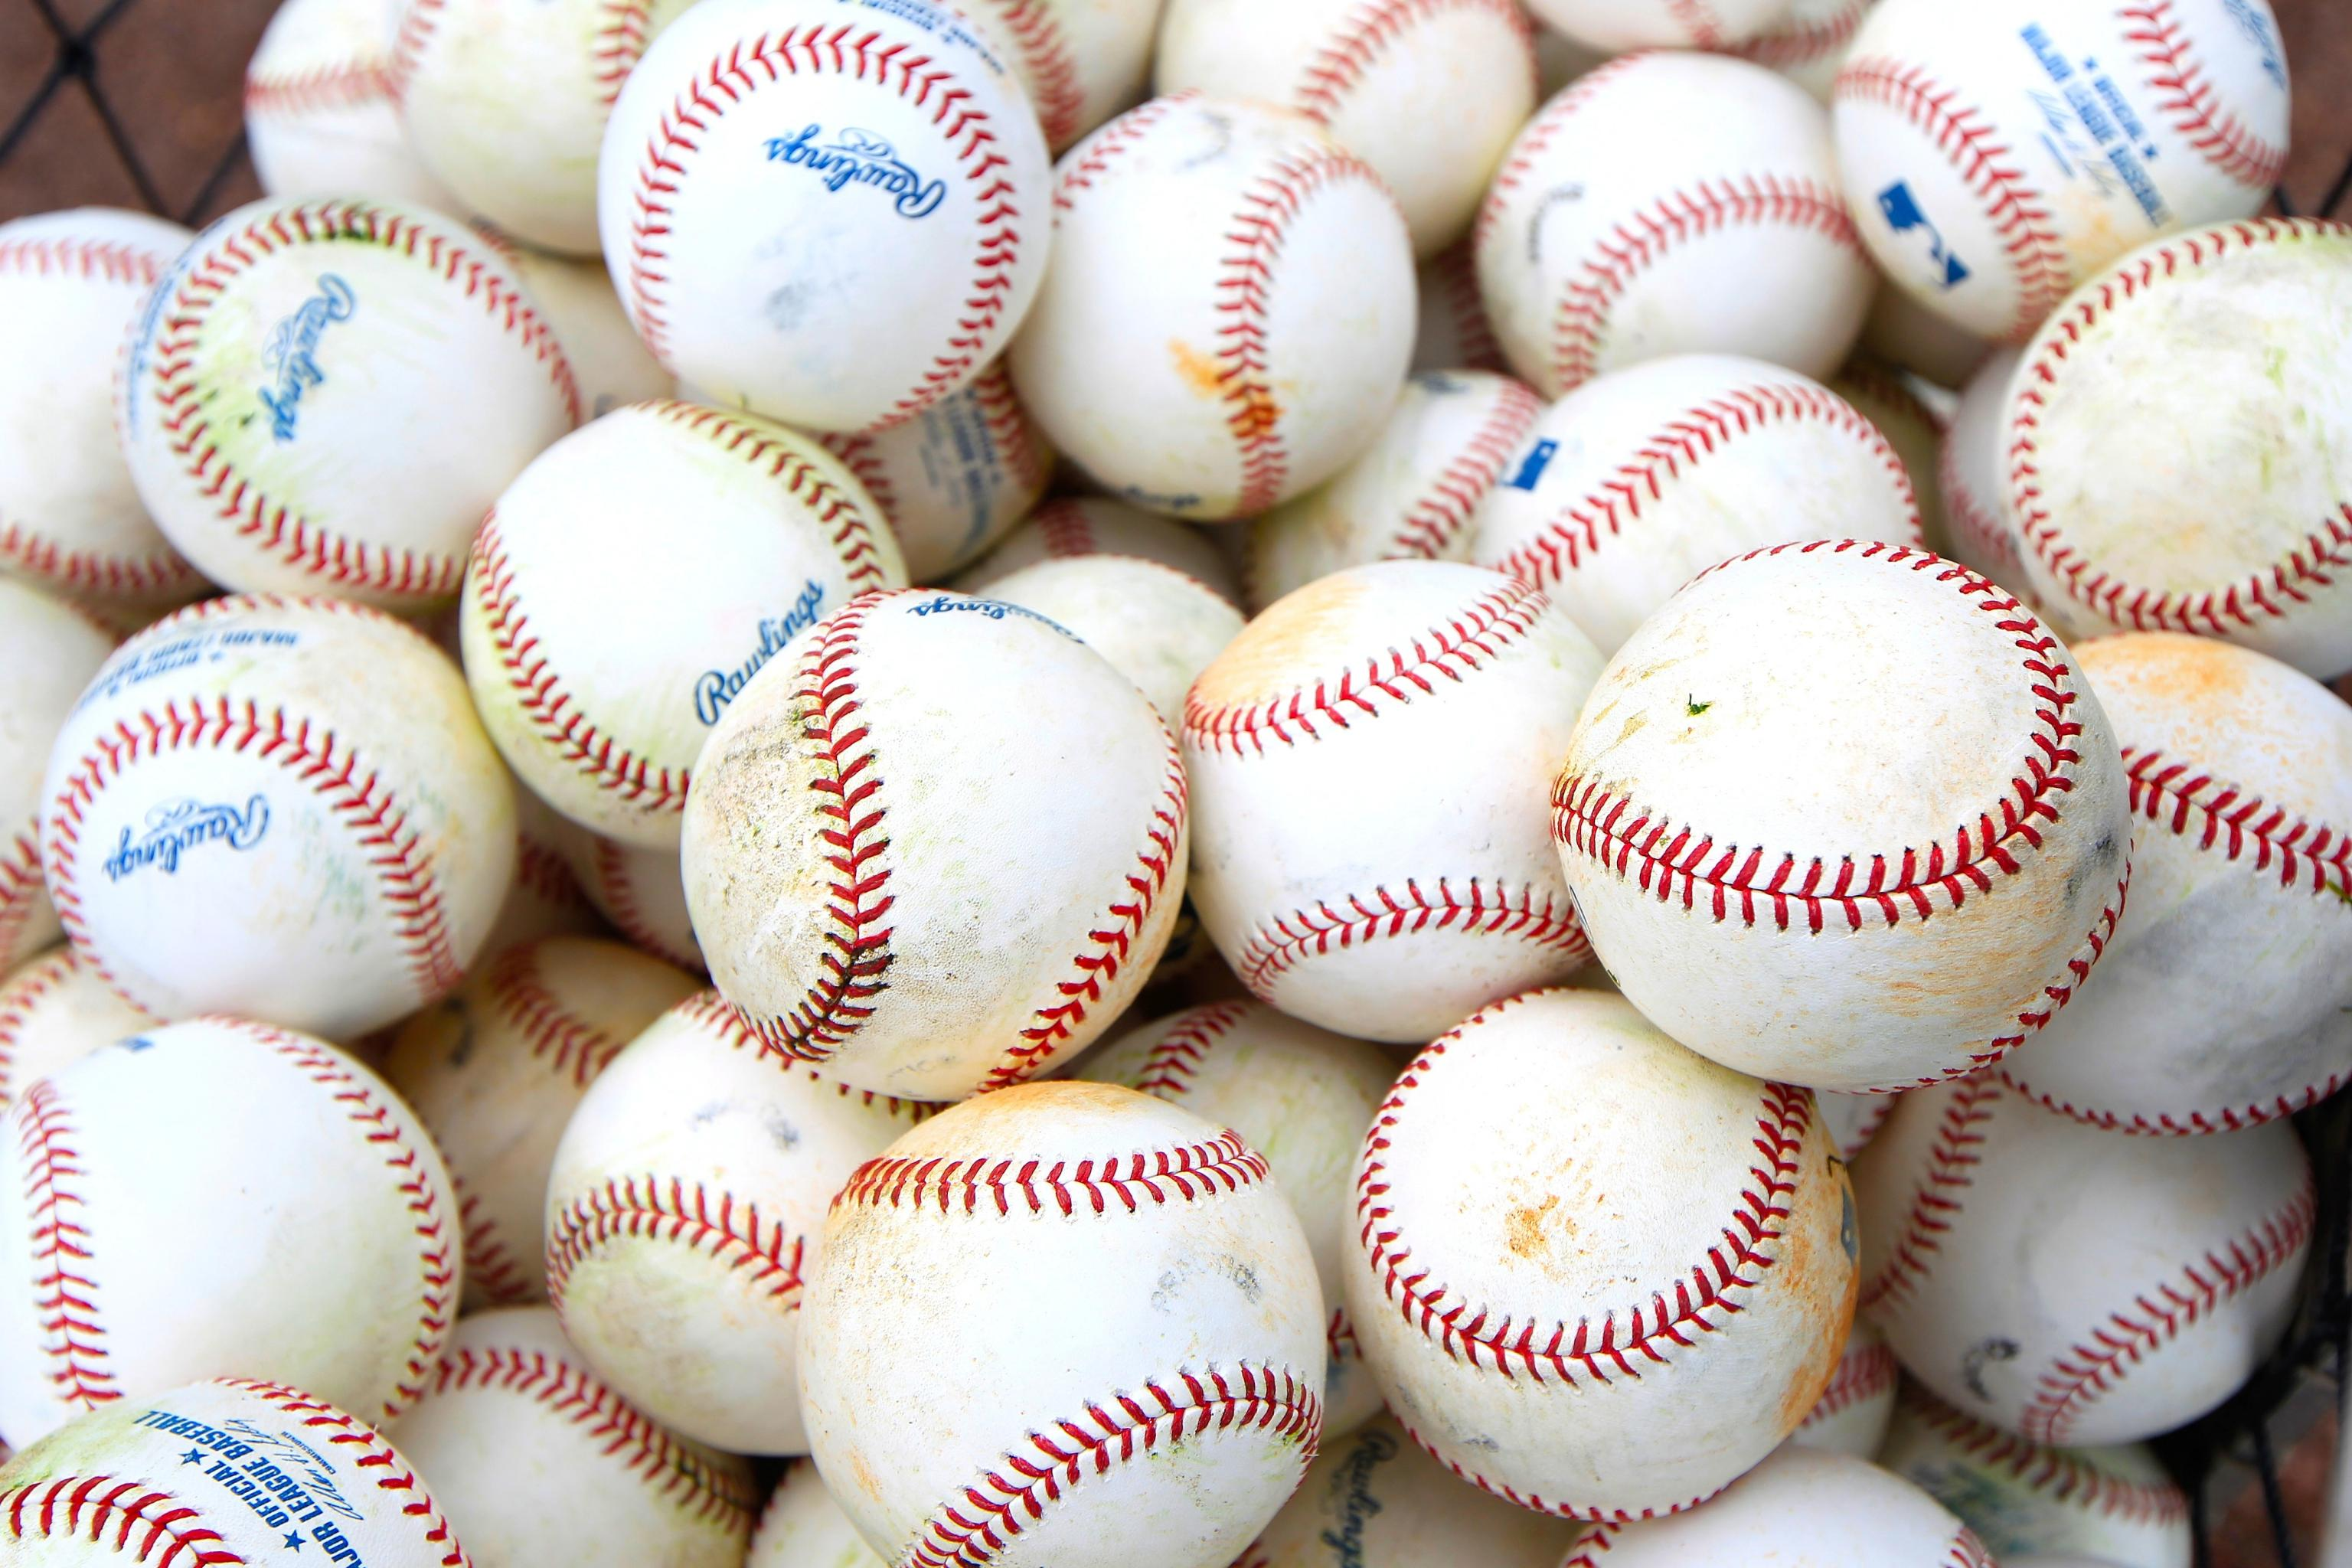 The Evolution Of The Baseball From The Dead Ball Era Through Today Bleacher Report Latest News Videos And Highlights